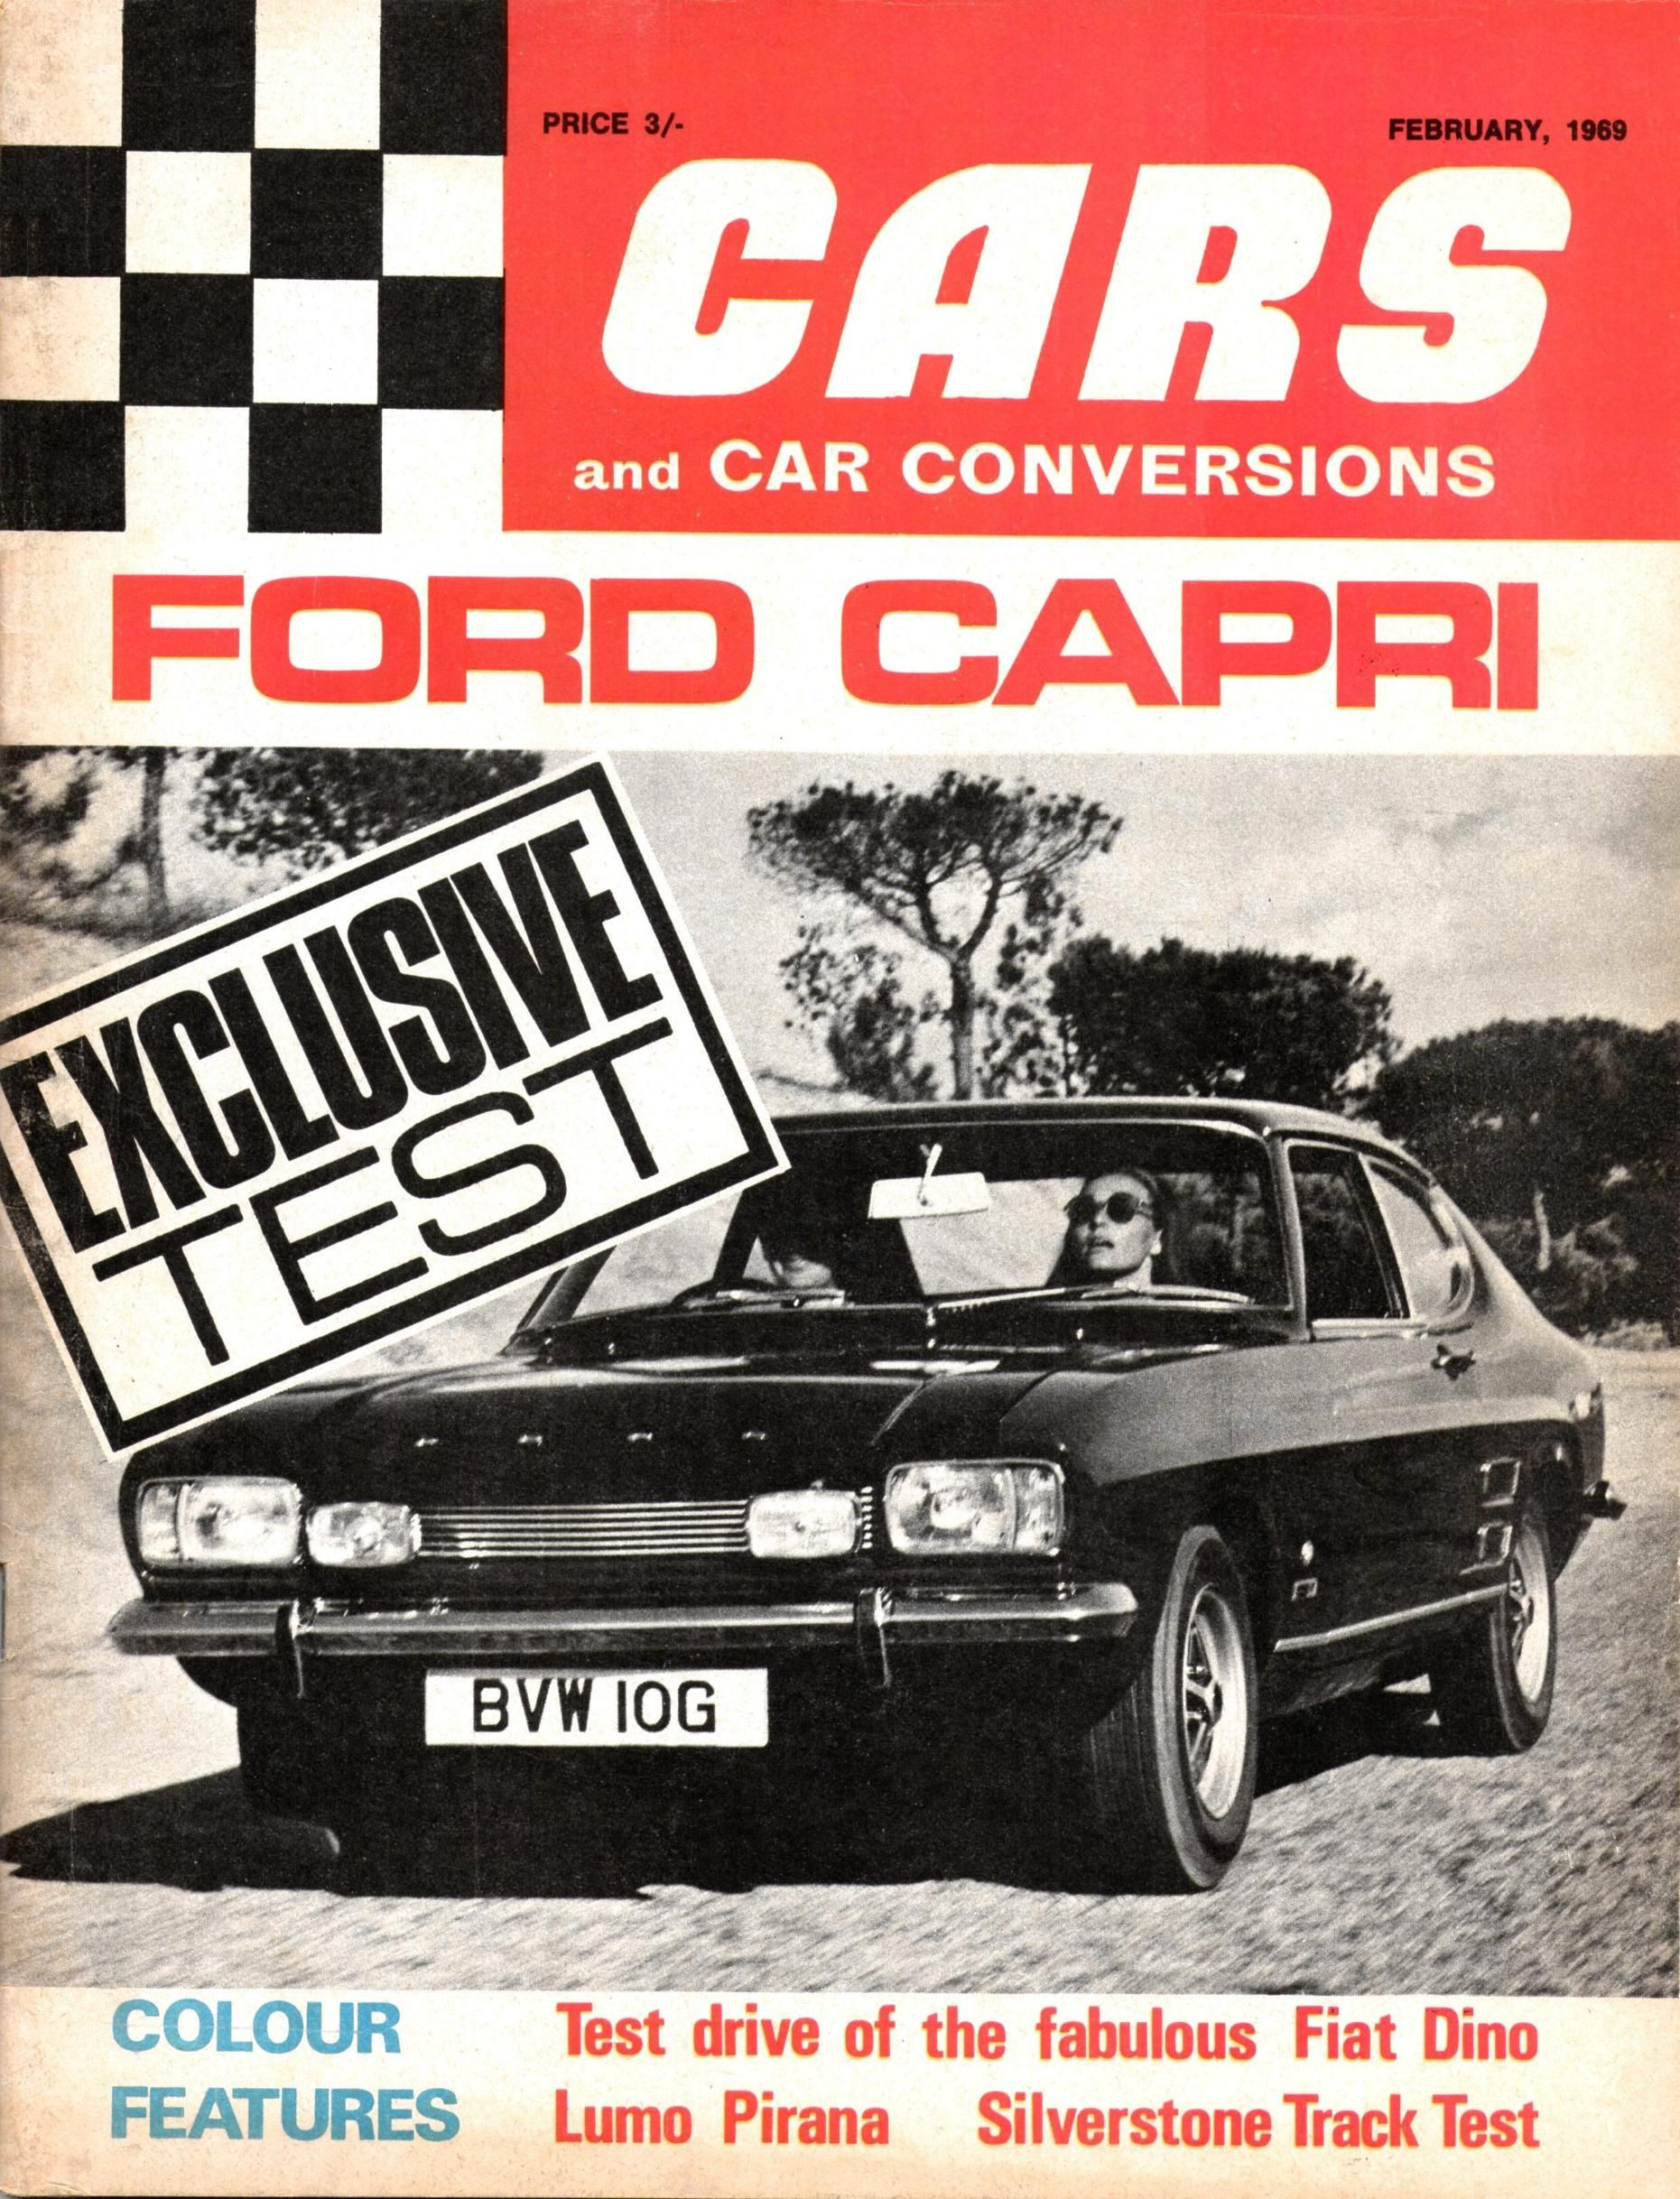 NEW FORD CAPRI - Cars u0026 Car Conversions magazine cover February 1969 - UK : ford capri cars - markmcfarlin.com